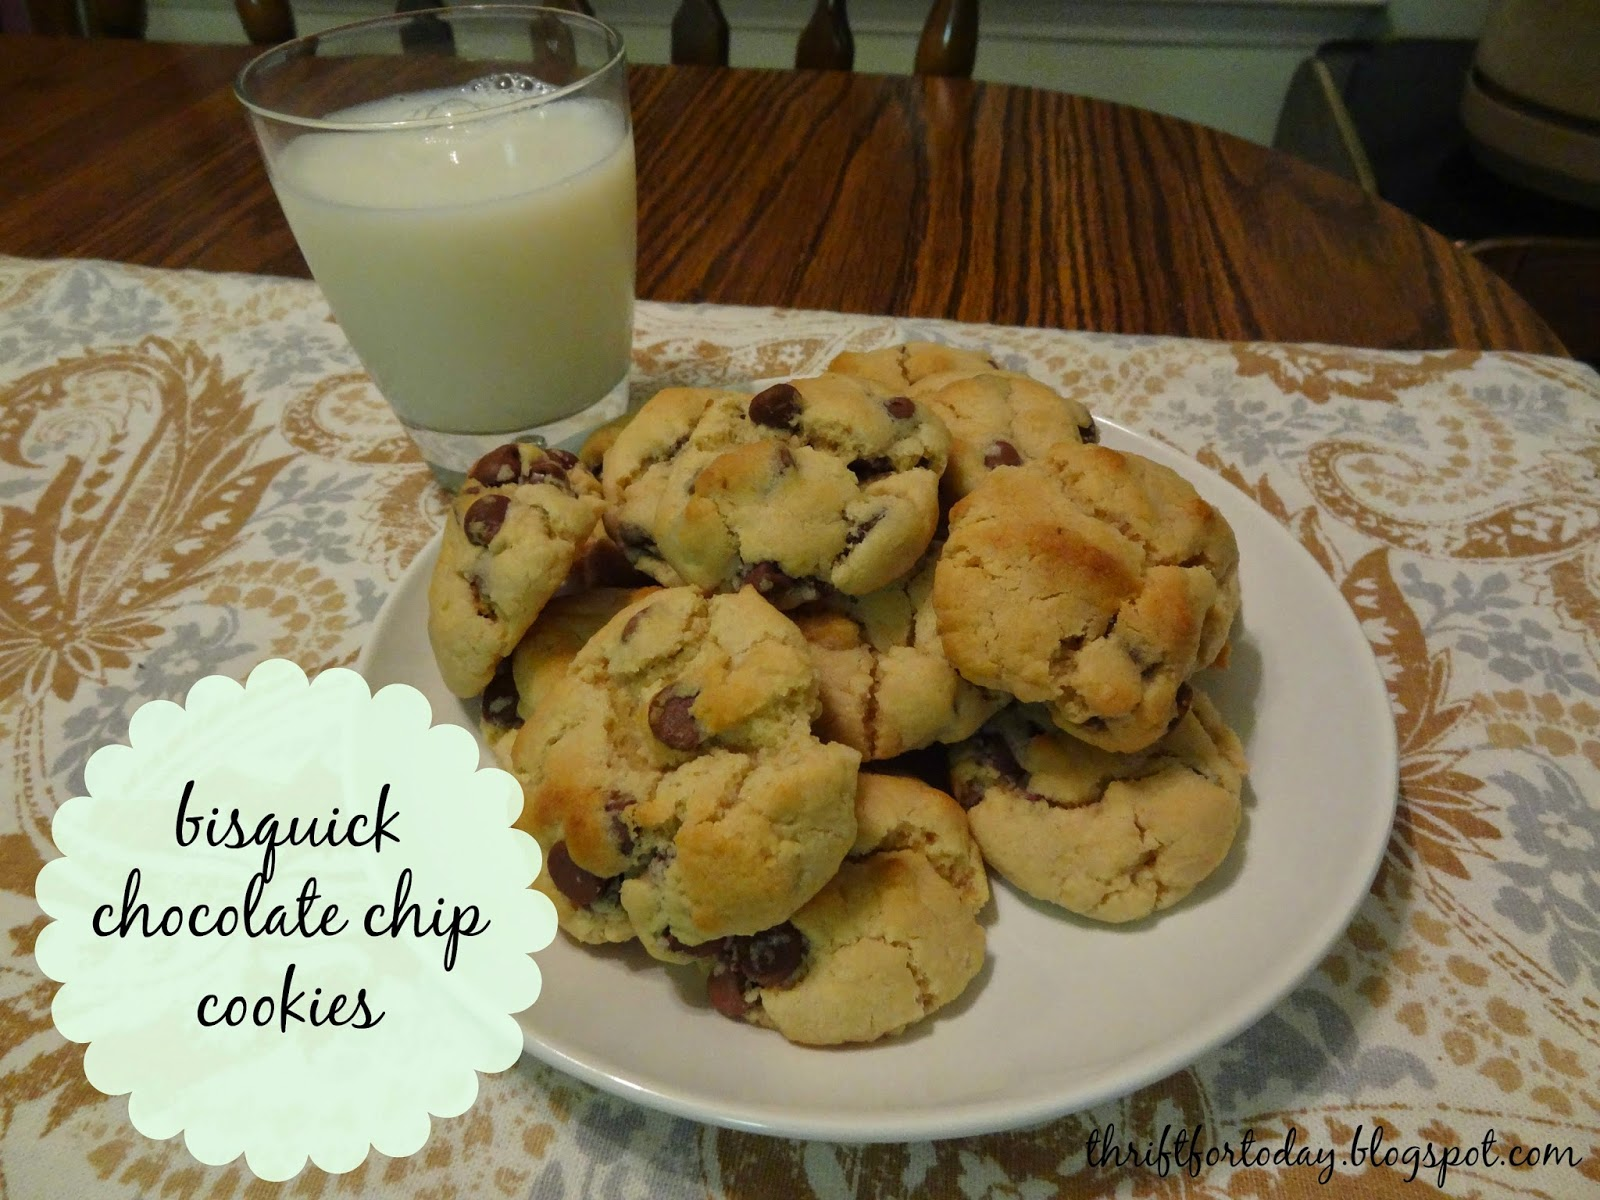 Thrift for Today: Bisquick Chocolate Chip Cookies